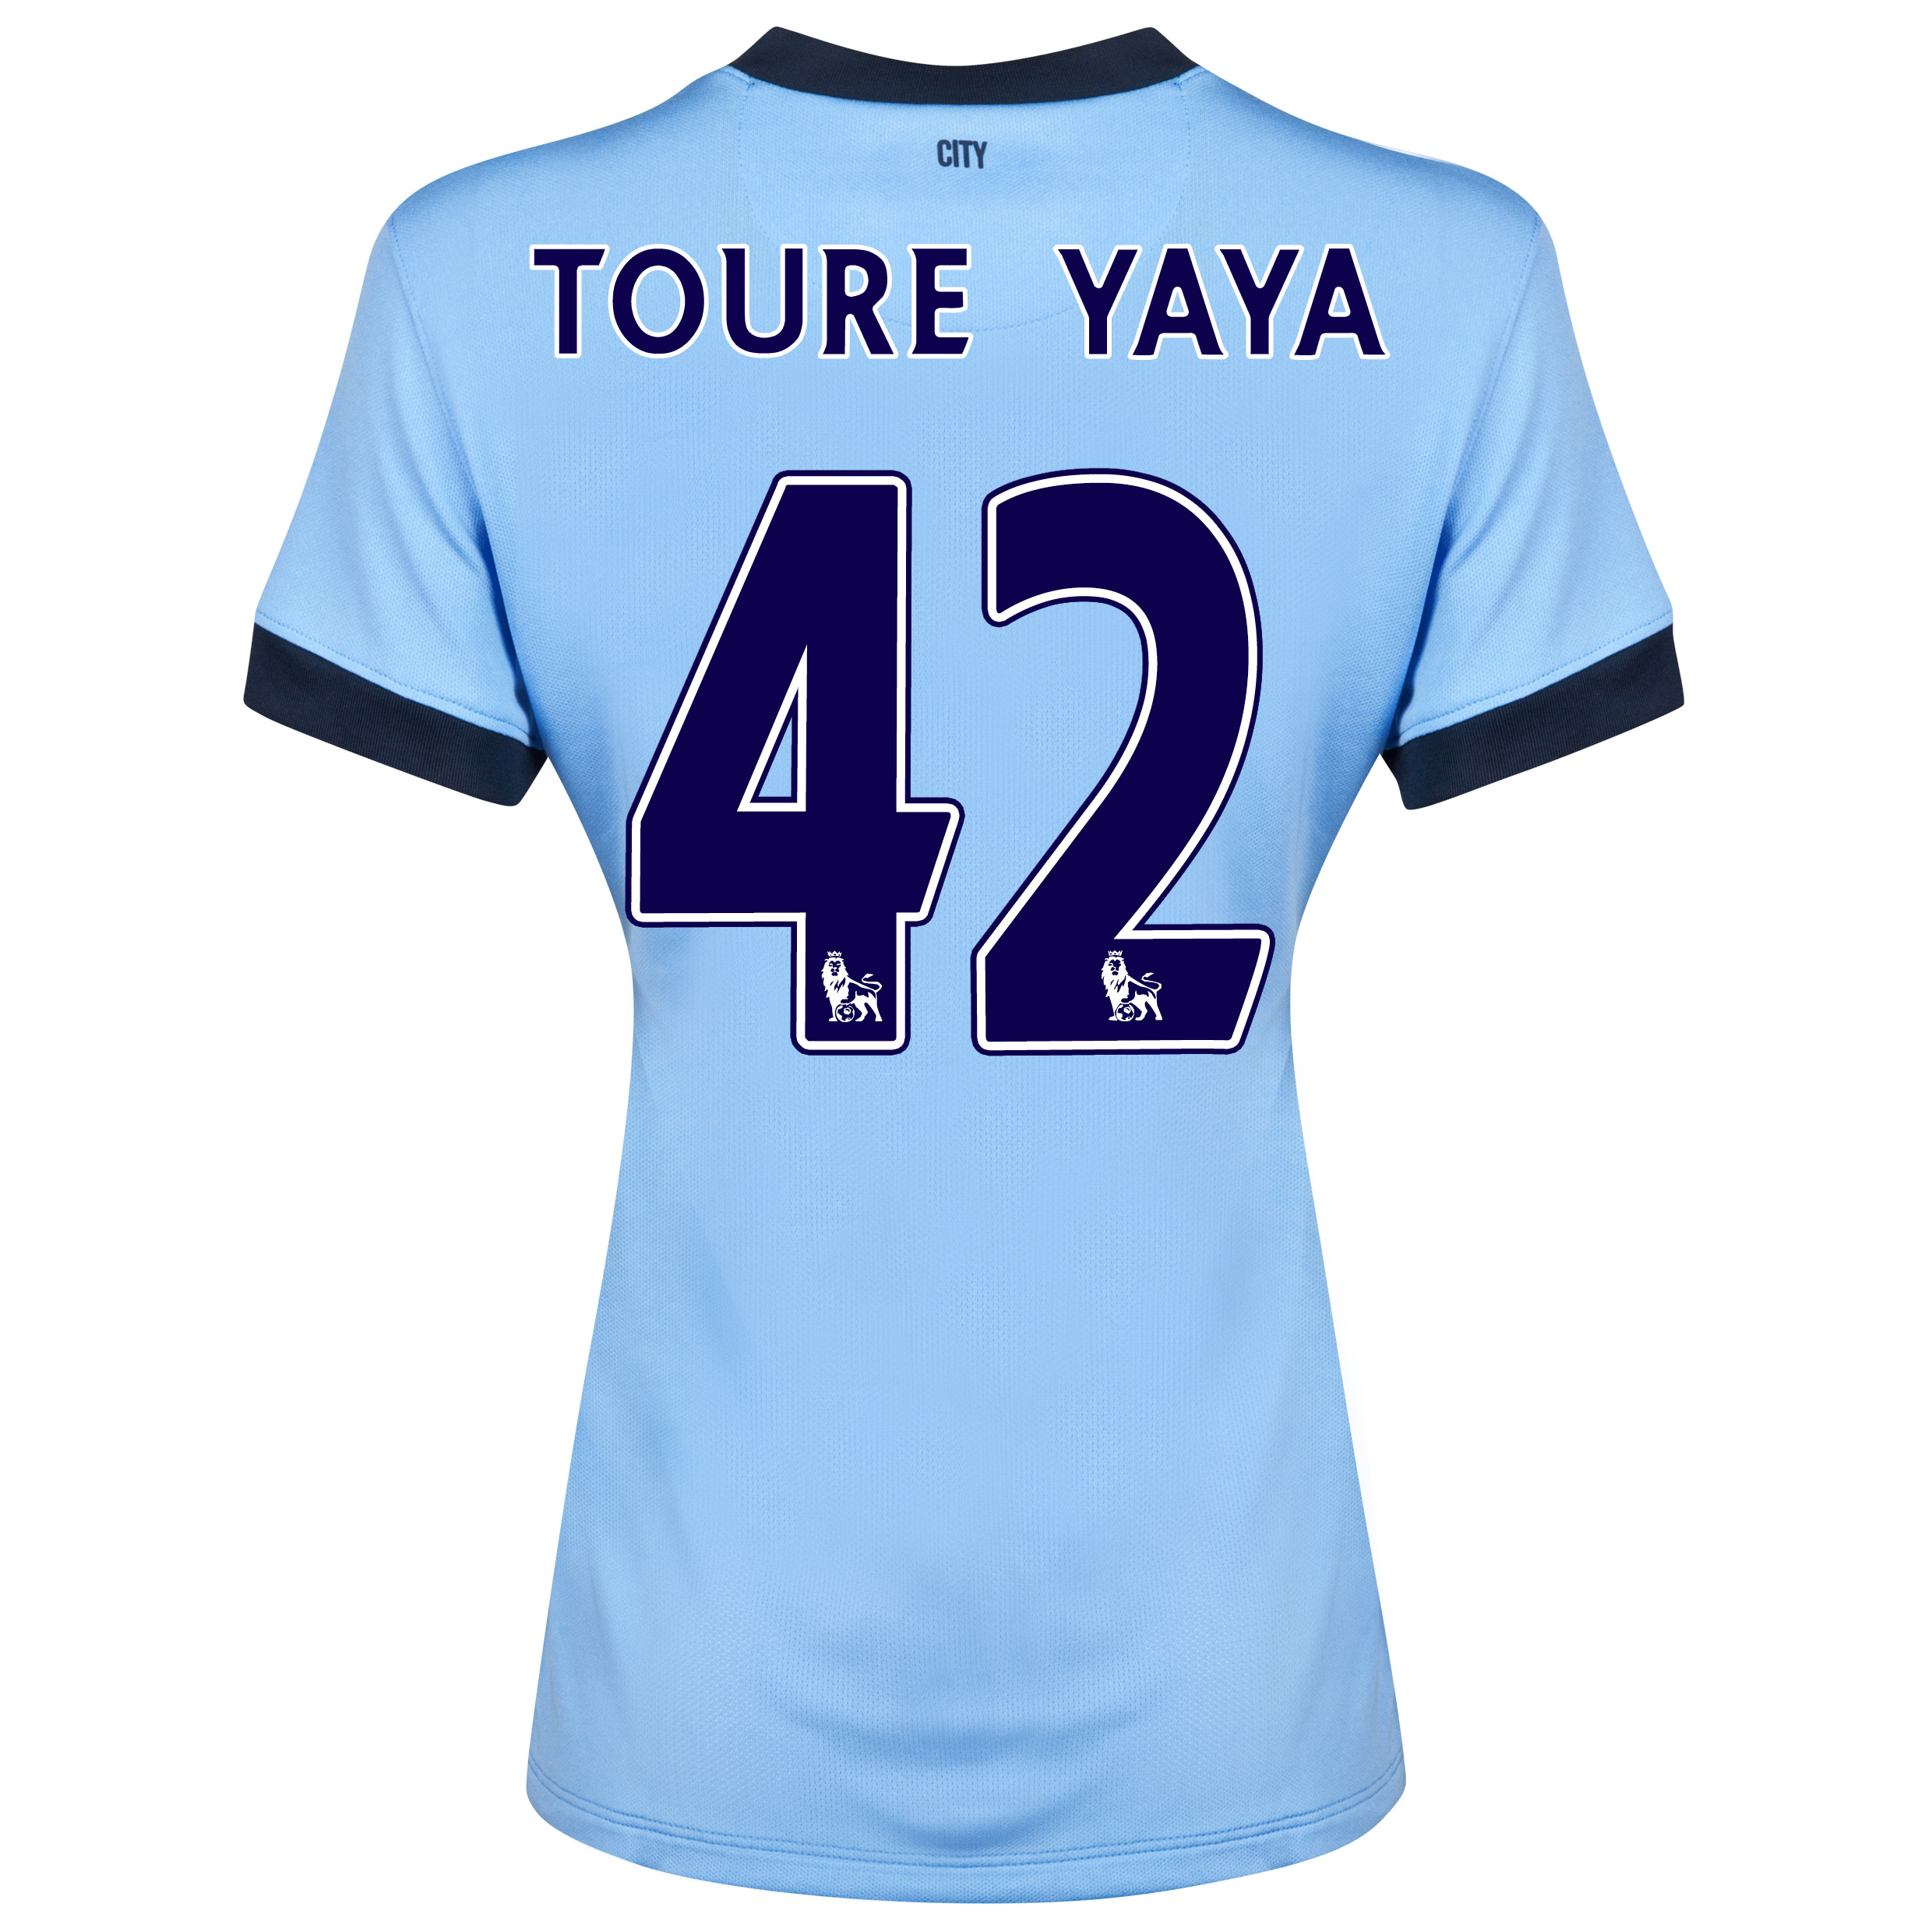 Manchester City Home Shirt 2014/15 - Womens Sky Blue with Toure Yaya 42 printing